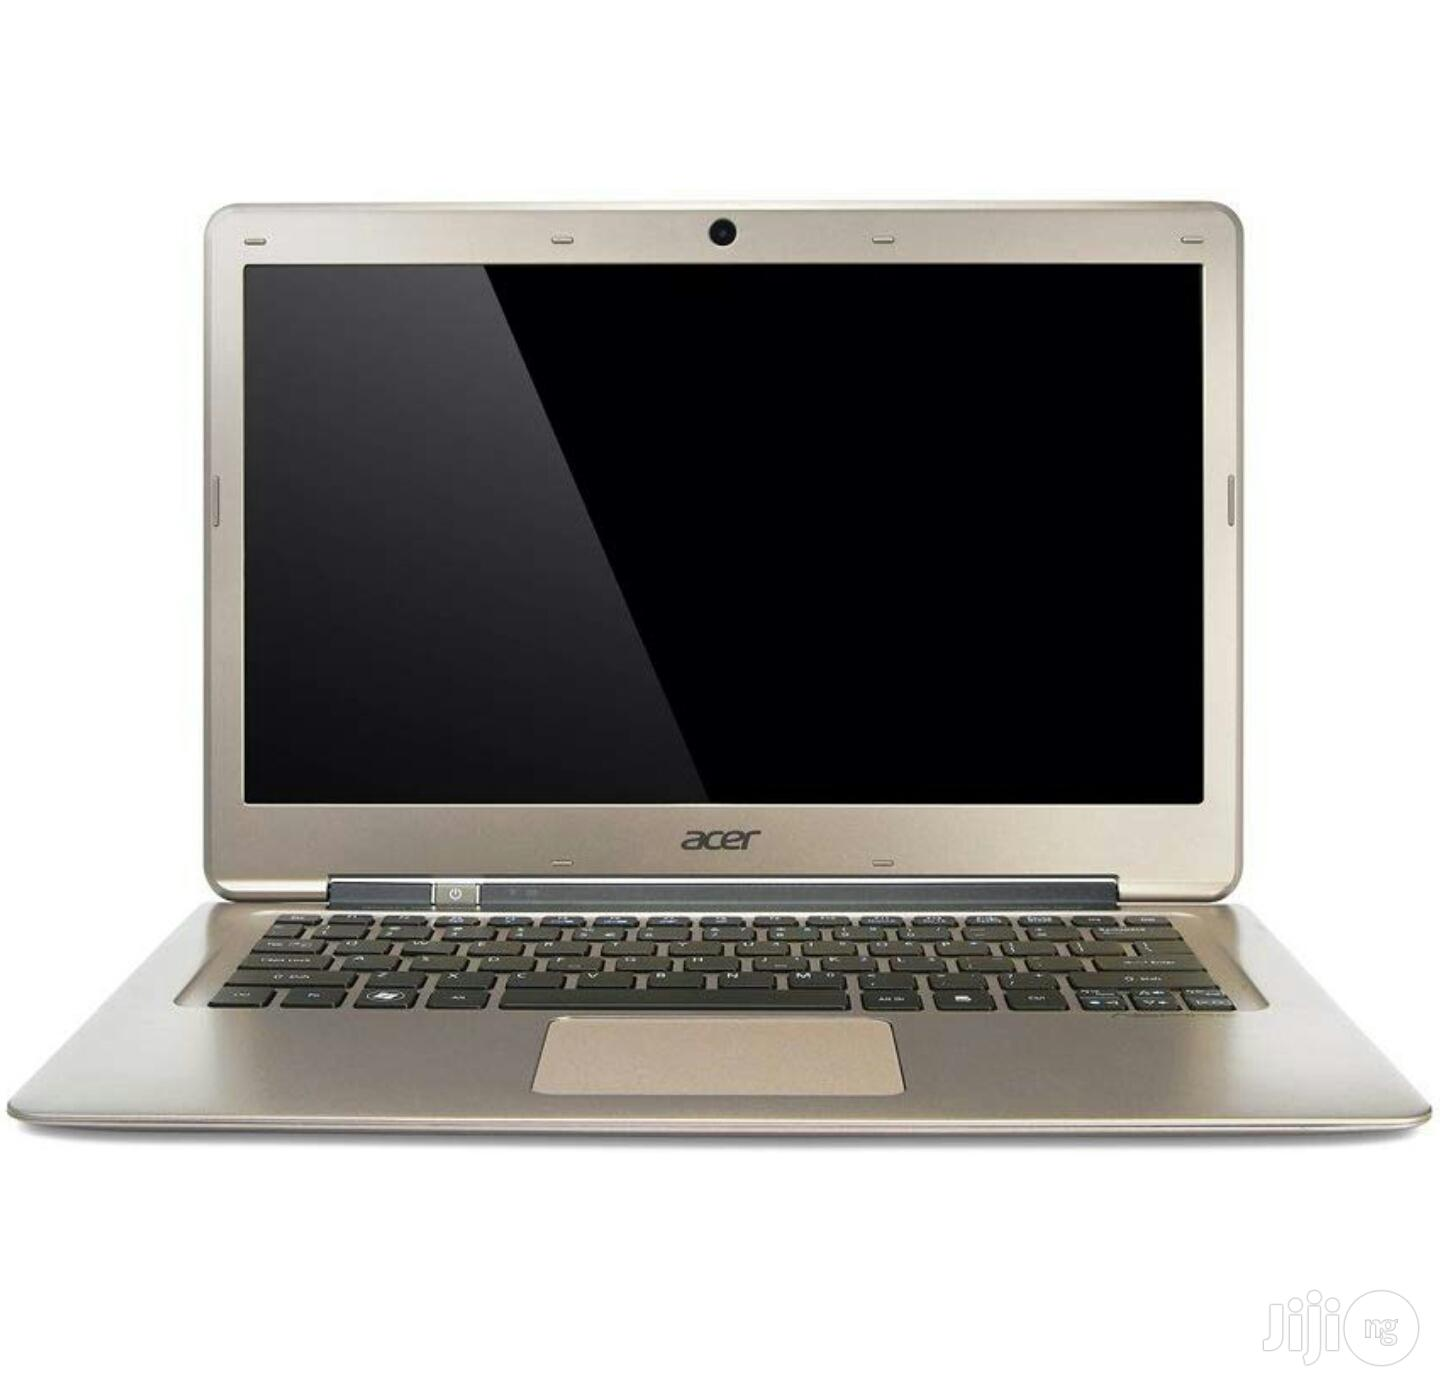 Archive: Acer Aspire S3/A3 Ultrabook - 13.3 Inches 500GB HDD Core I5 4GB RAM